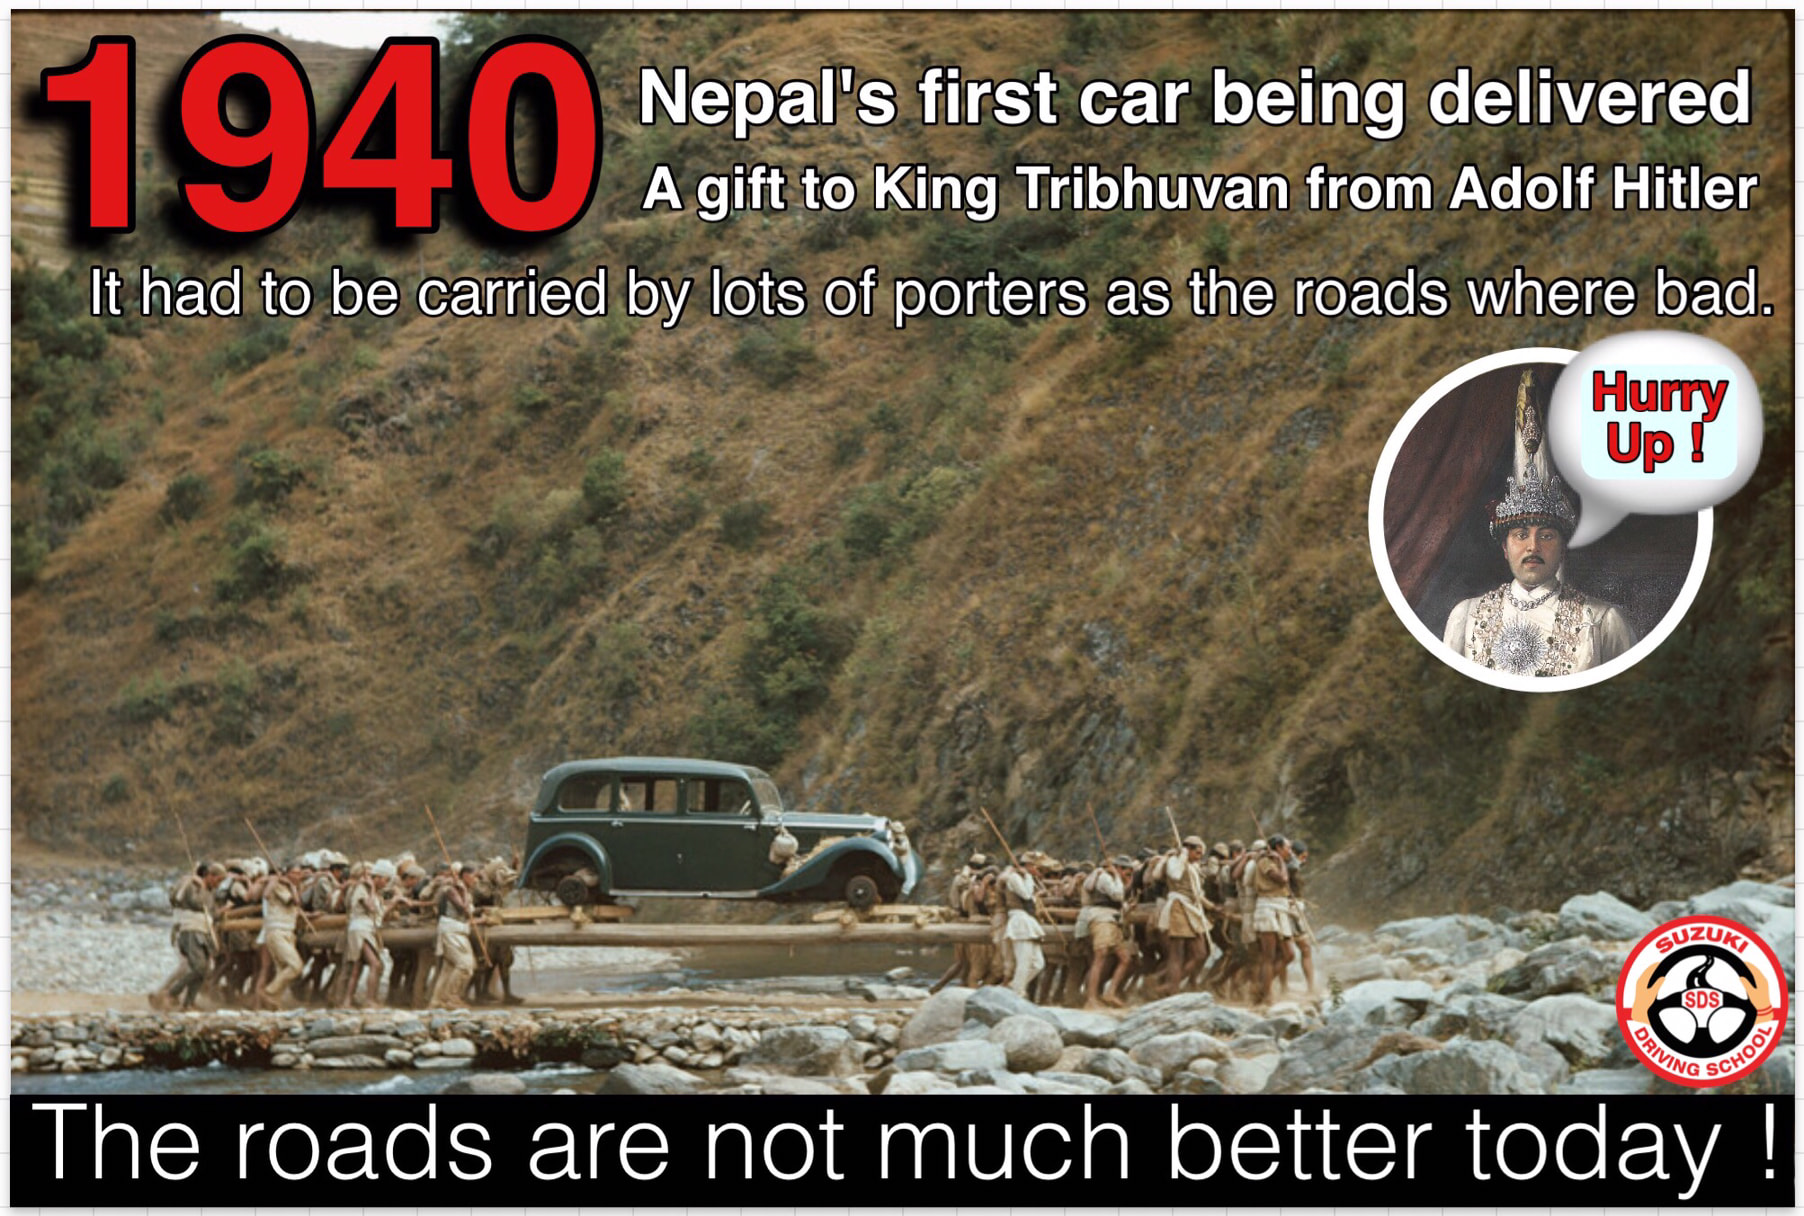 NEPAL'S FIRST CAR